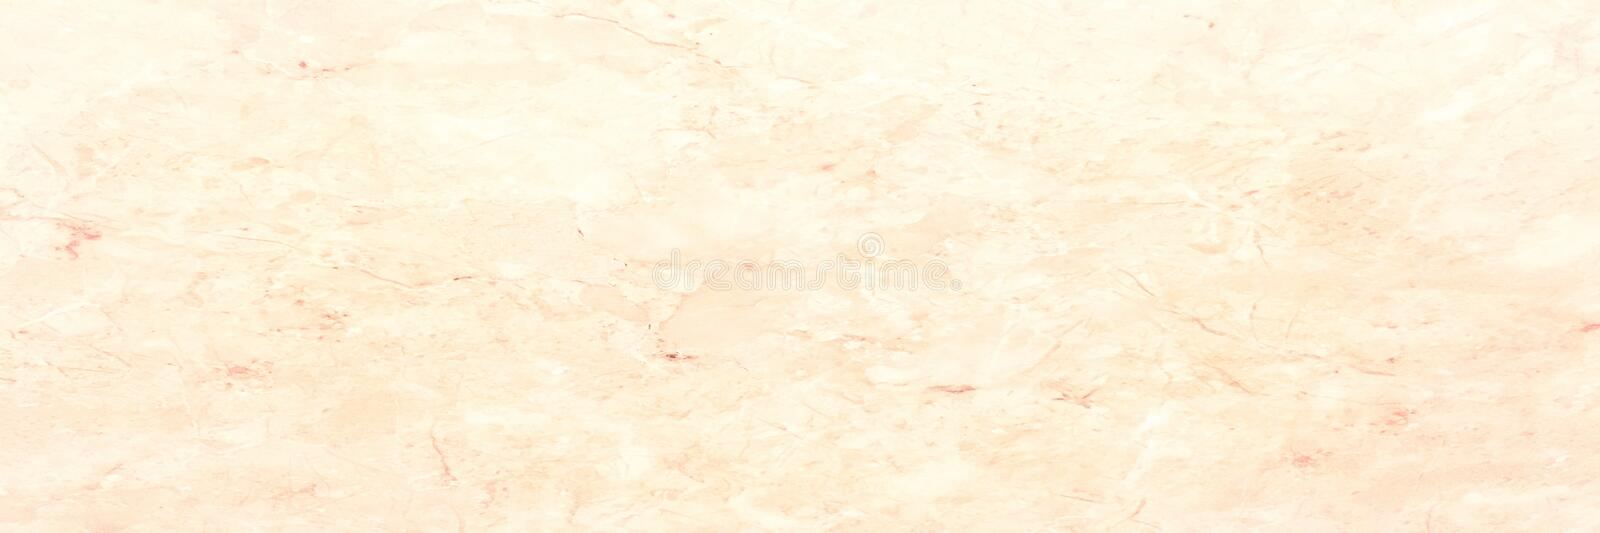 White Organic Marble. Marble Floor Texture.Marble Wall Background.  royalty free stock photography